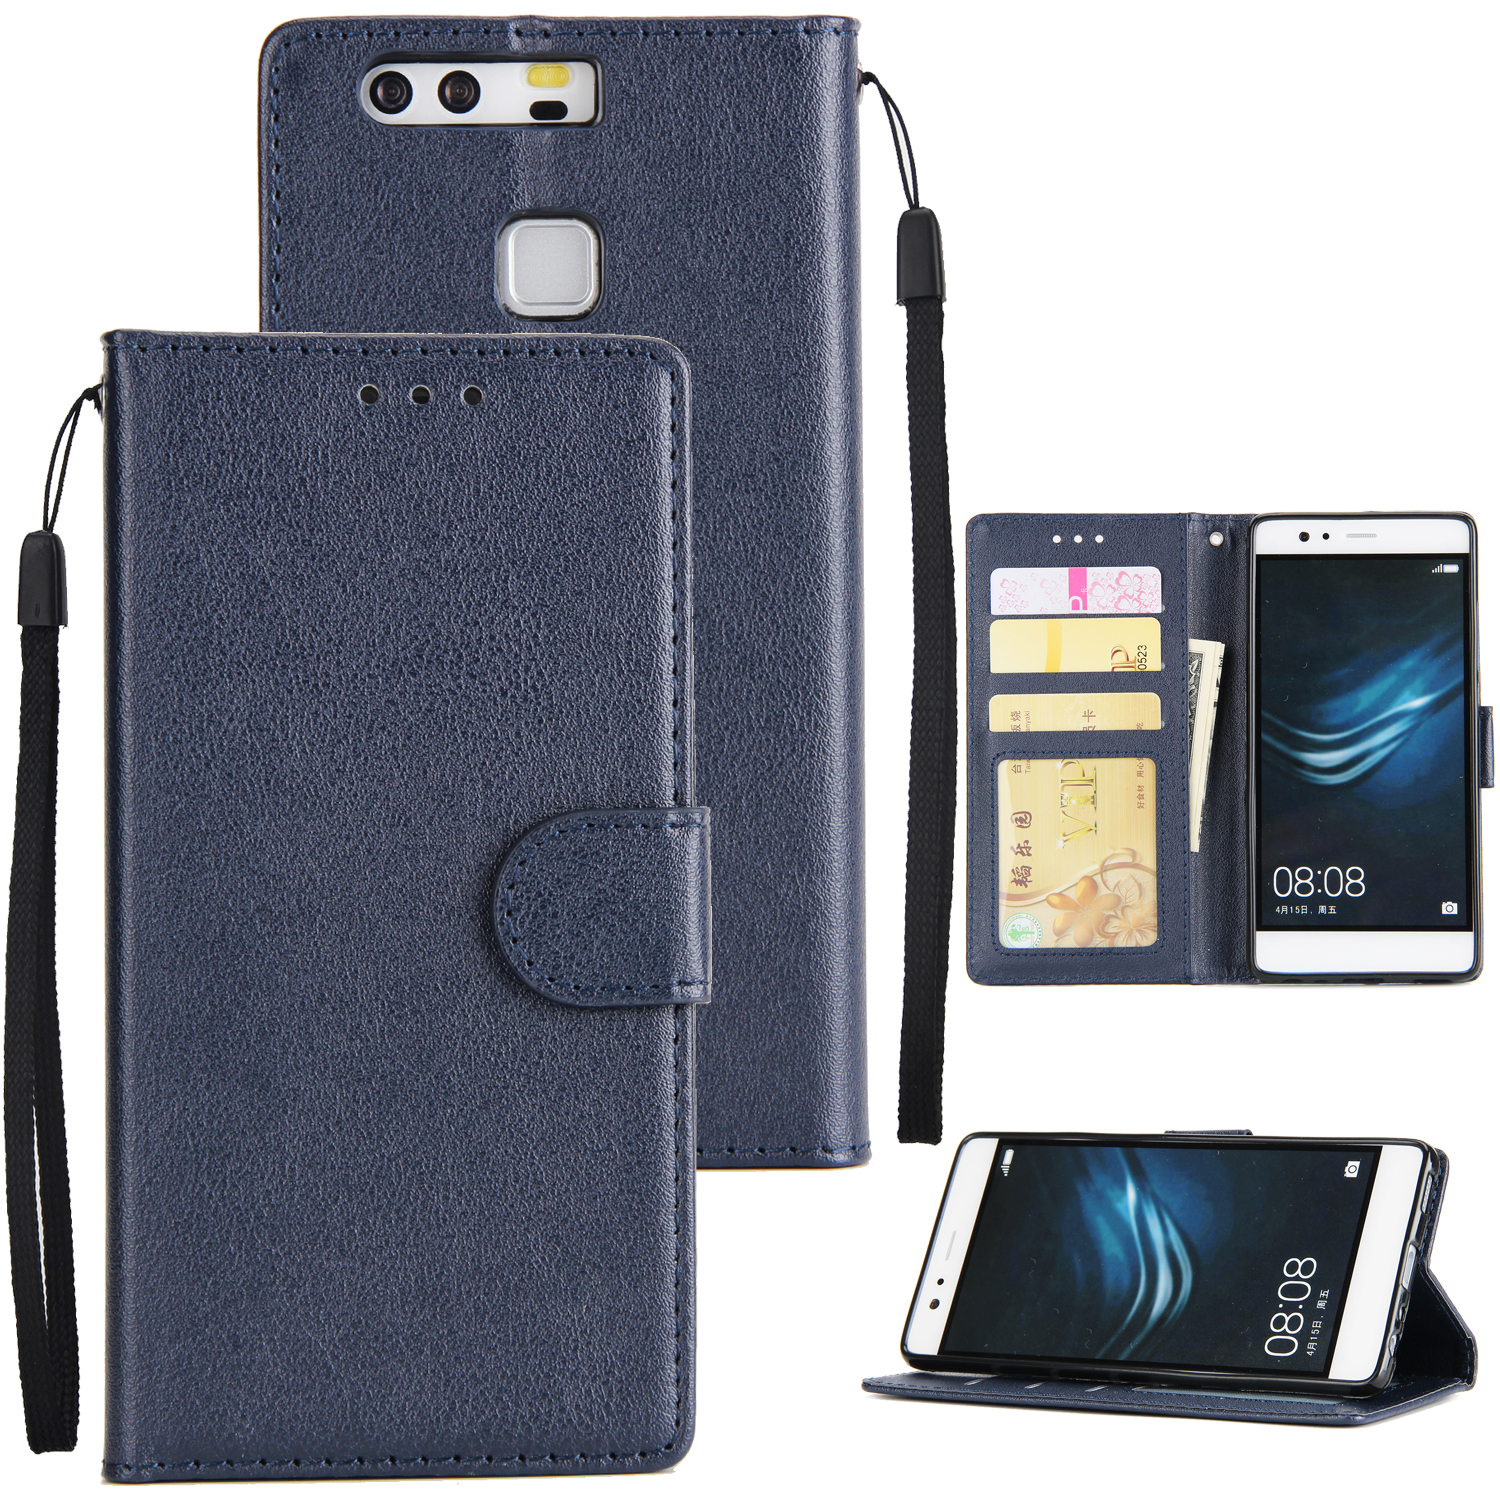 For Huawei P9 plus PU Leather Smart Phone Case Protective Cover with Buckle & 3 Card Position  blue